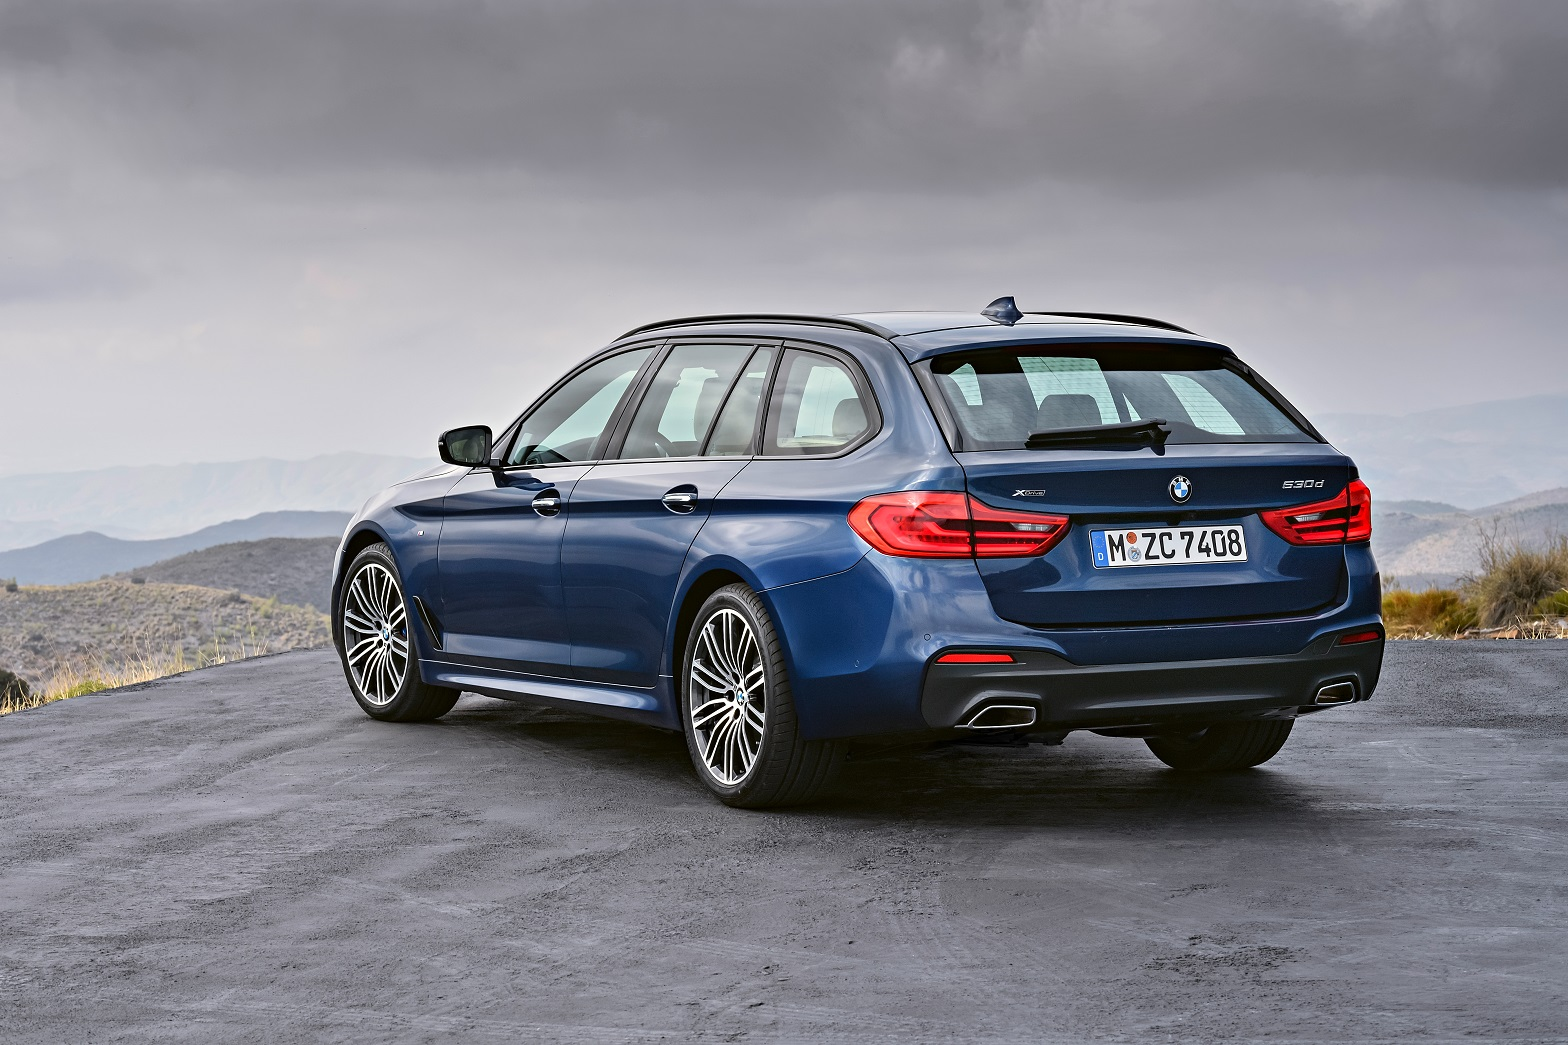 p90245011_highres_the-new-bmw-5-series